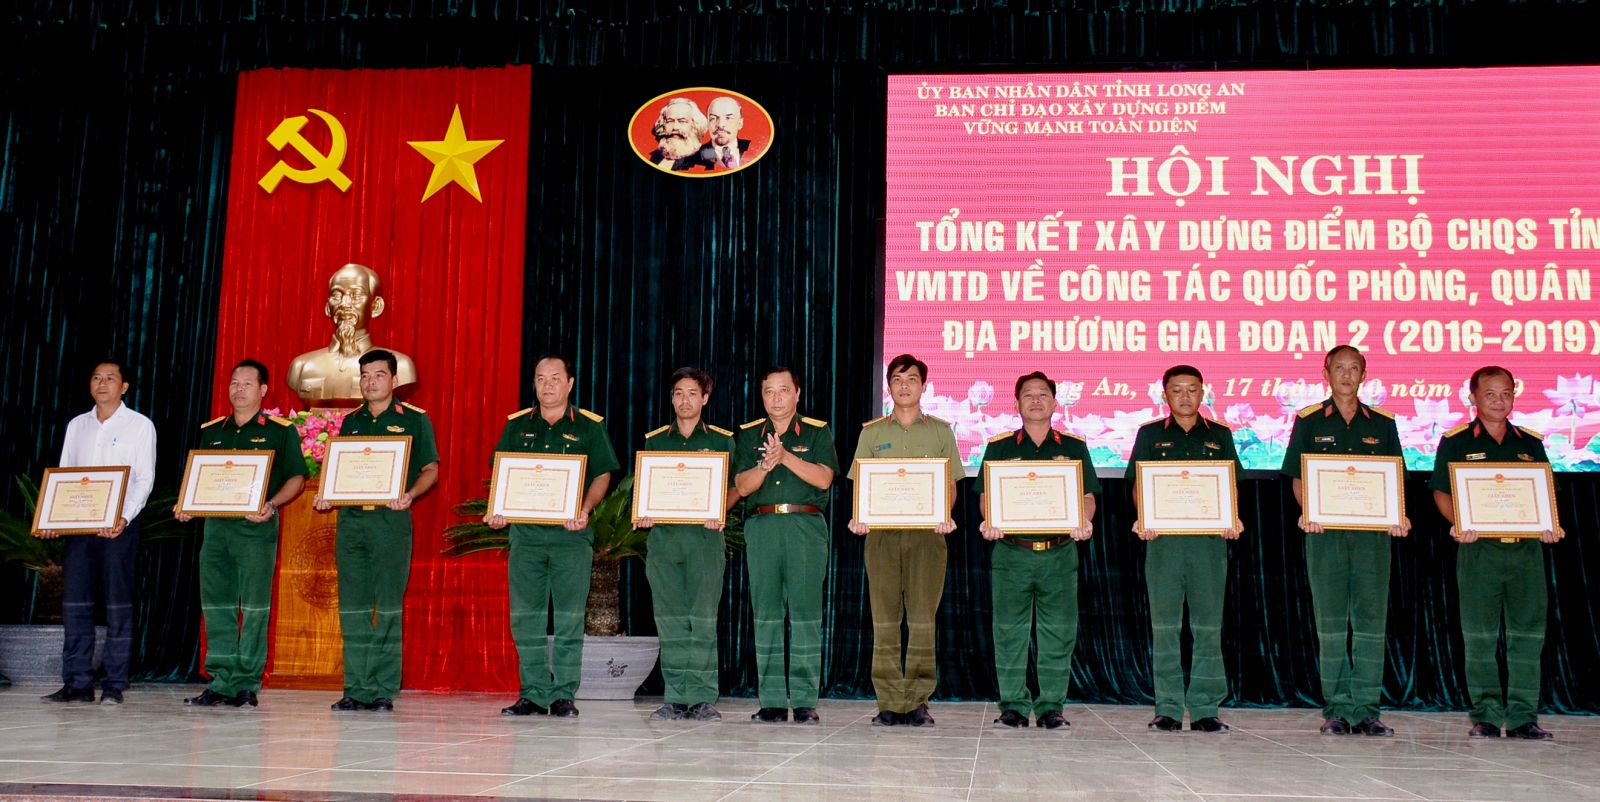 The Commander of the Provincial Military Command - Tran Van Trai presented certificates of merit to 60 collectives and individuals with outstanding achievements in building the typical model of the comprehensive strong Military Command for local defense and military work.